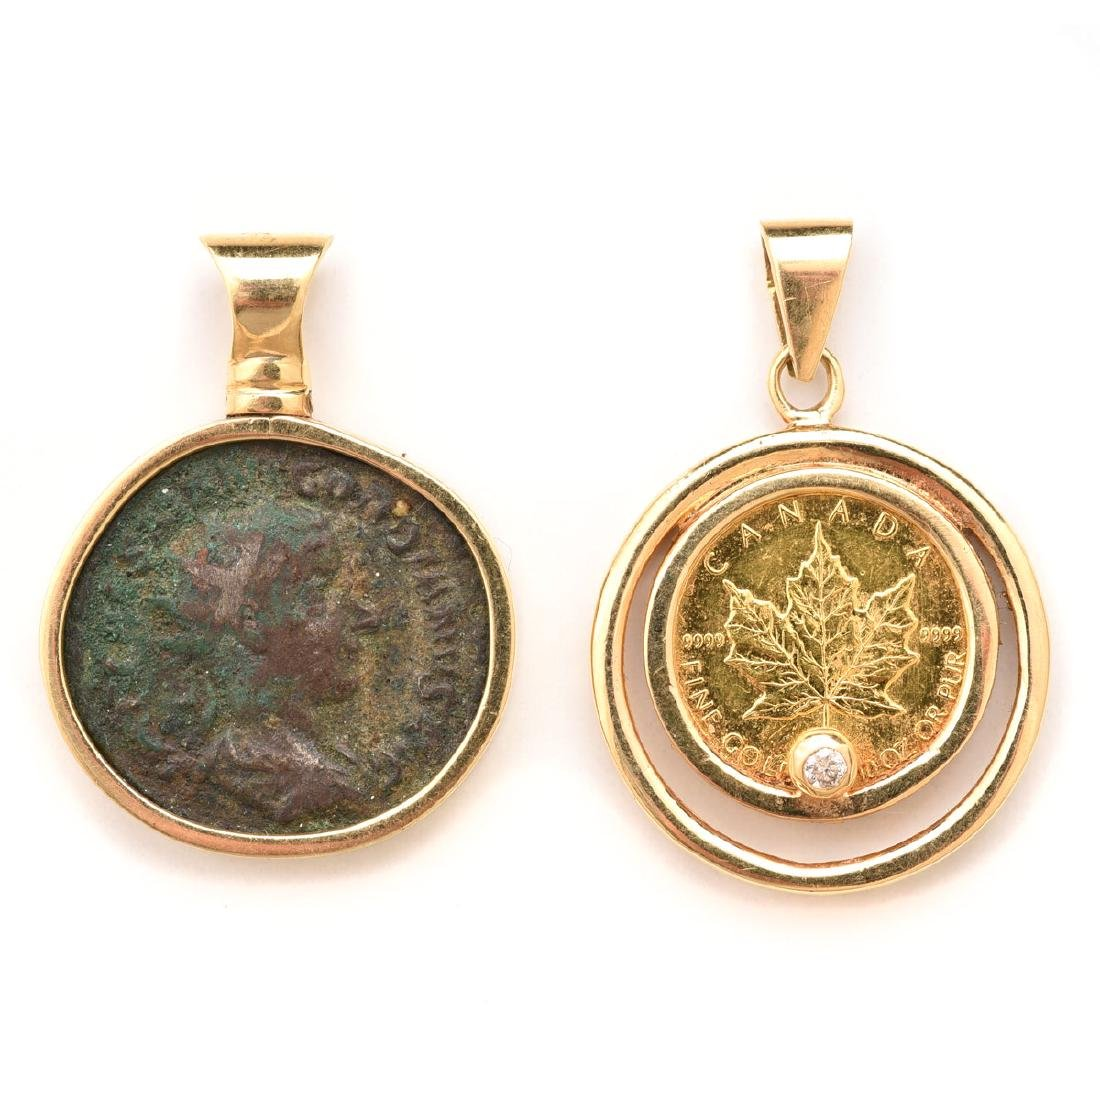 Collection of 18k Gold, Coin Pendants.